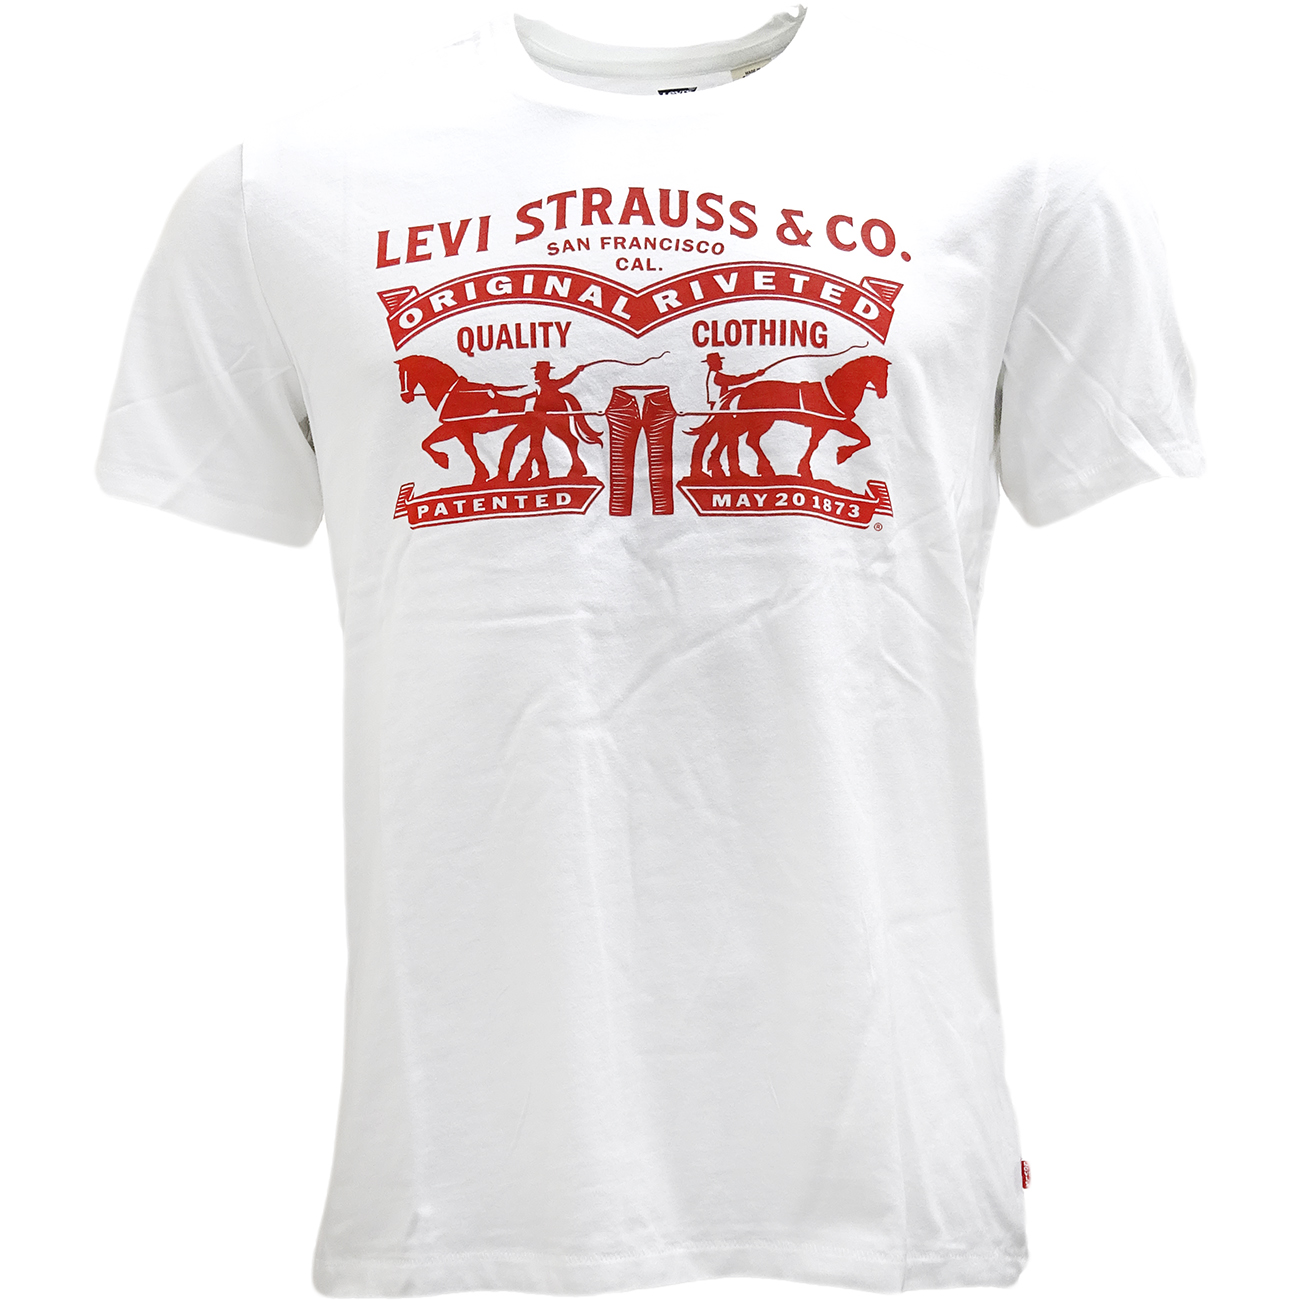 Levi Strauss & Co in Apparel